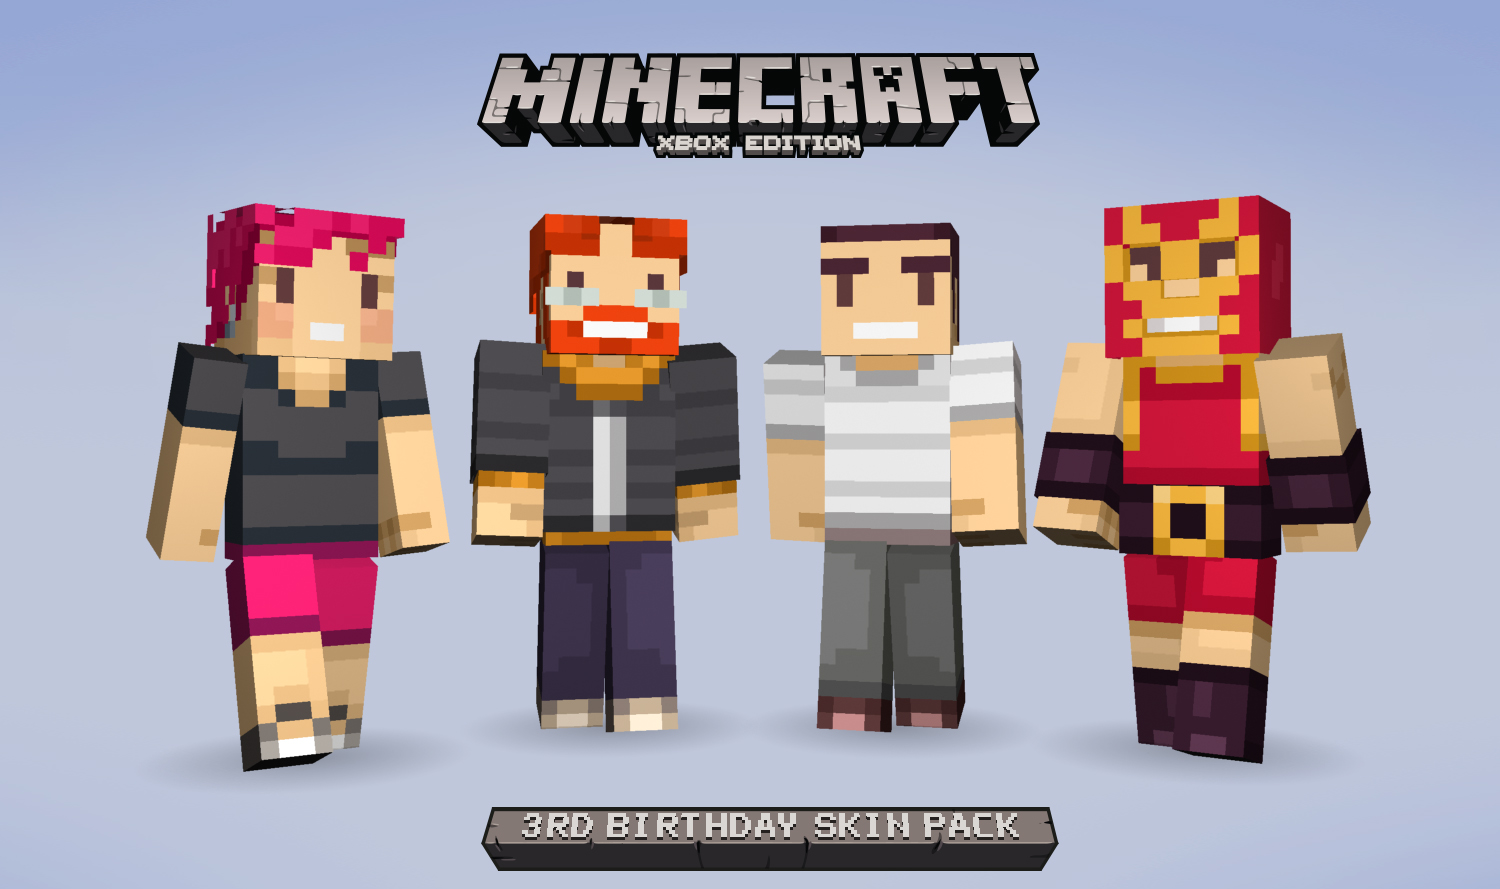 Celebrate Minecraft: Xbox 360 Edition's birthday with some ...